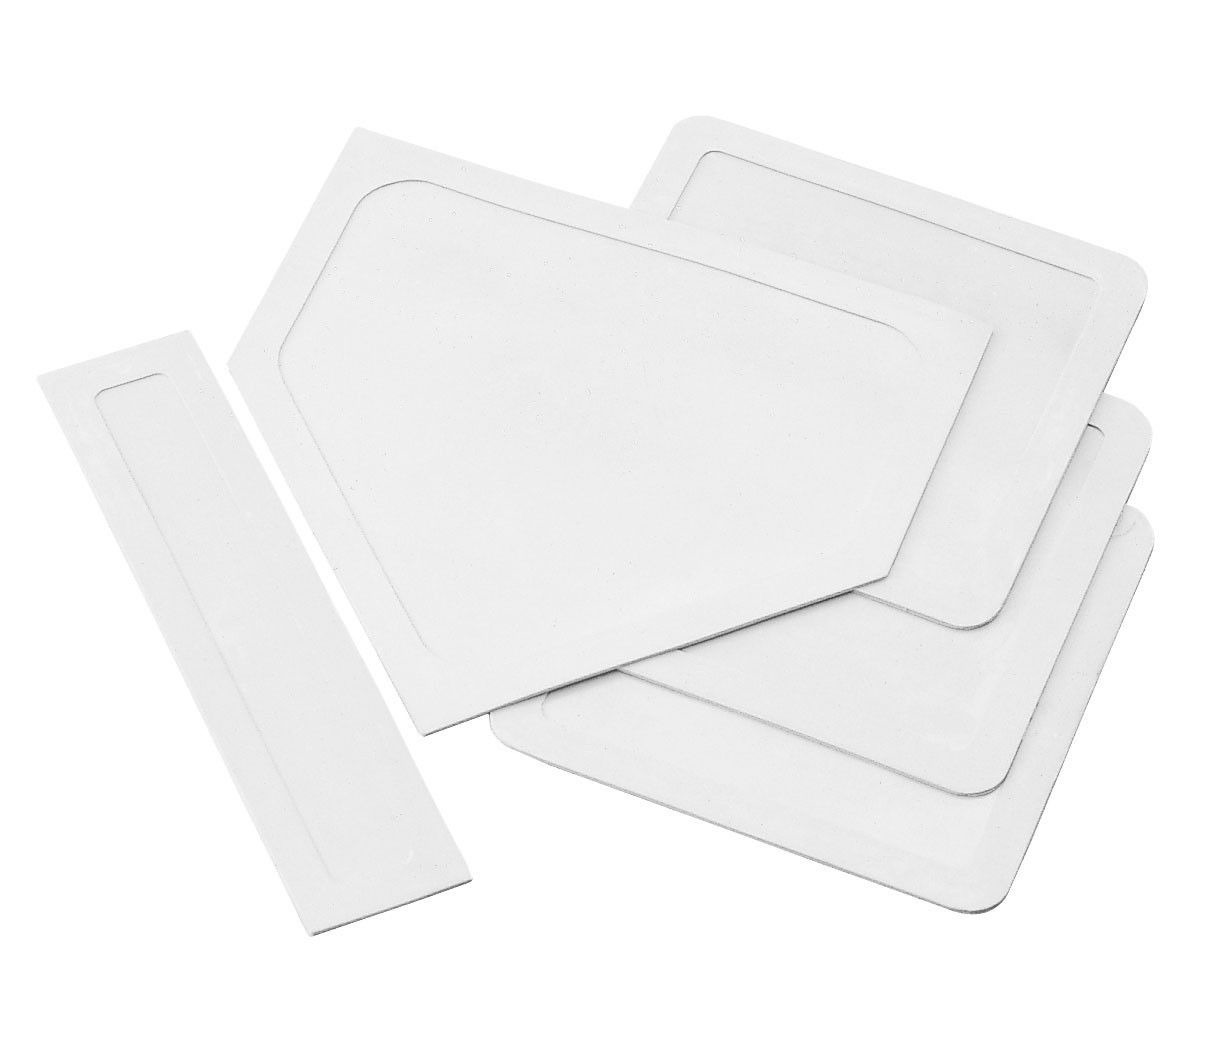 Homeplate /& Pitching Rubber White New Champion Baseball Throw Down 3 Base Set